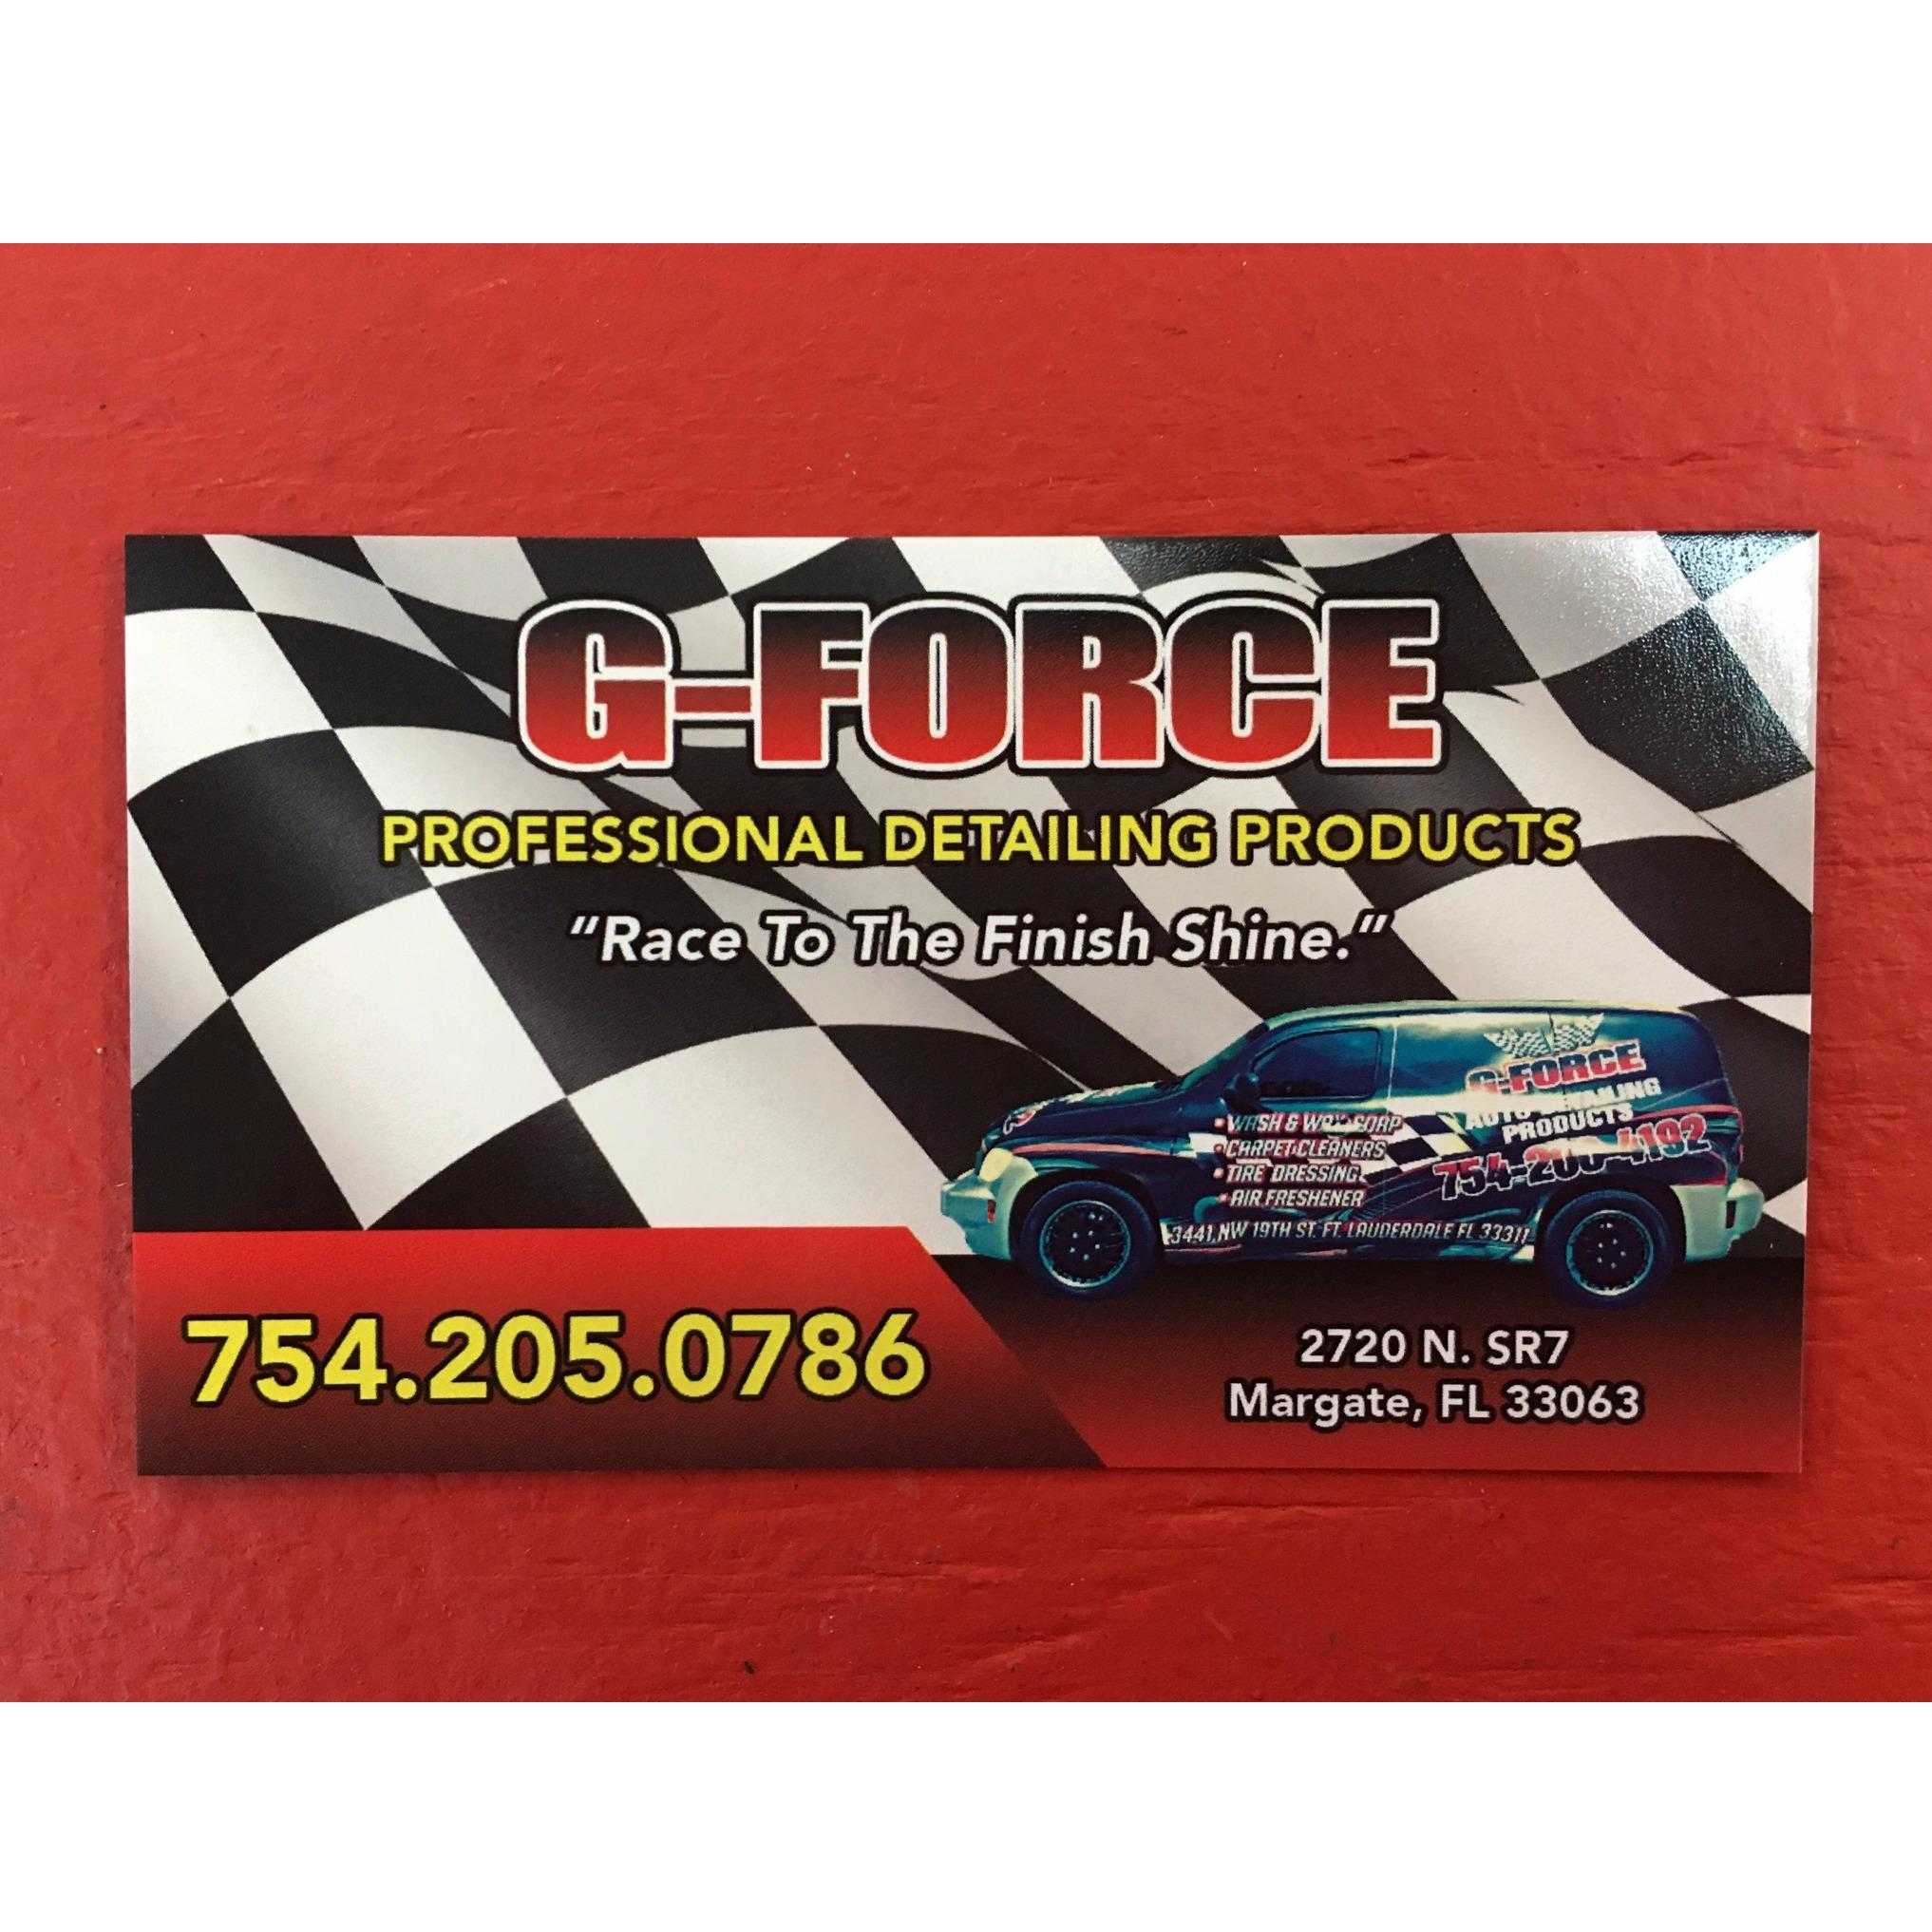 G-Force Auto Detailing Products - Margate, FL 33063 - (754)205-0786 | ShowMeLocal.com